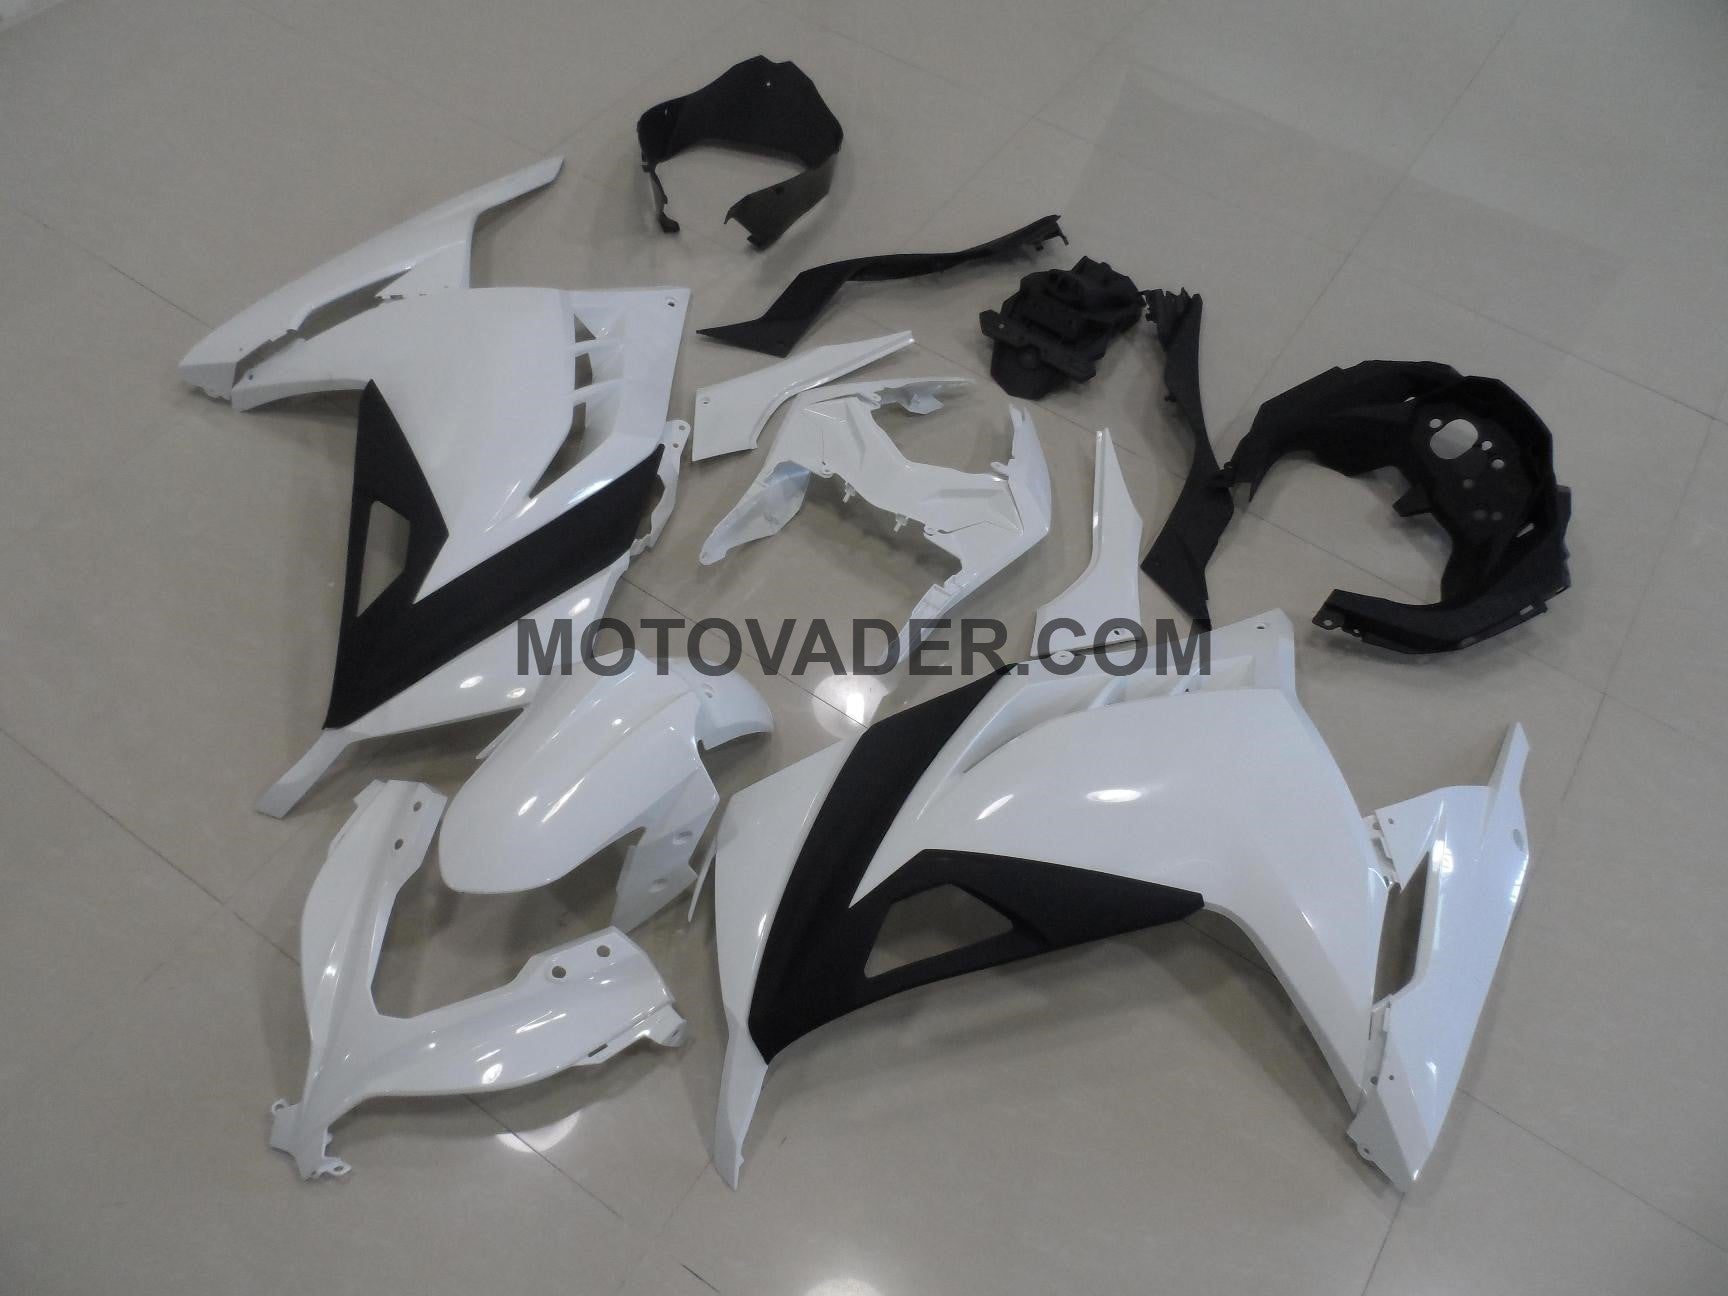 Kawasaki Ninja300 2013 Black & White Fairing